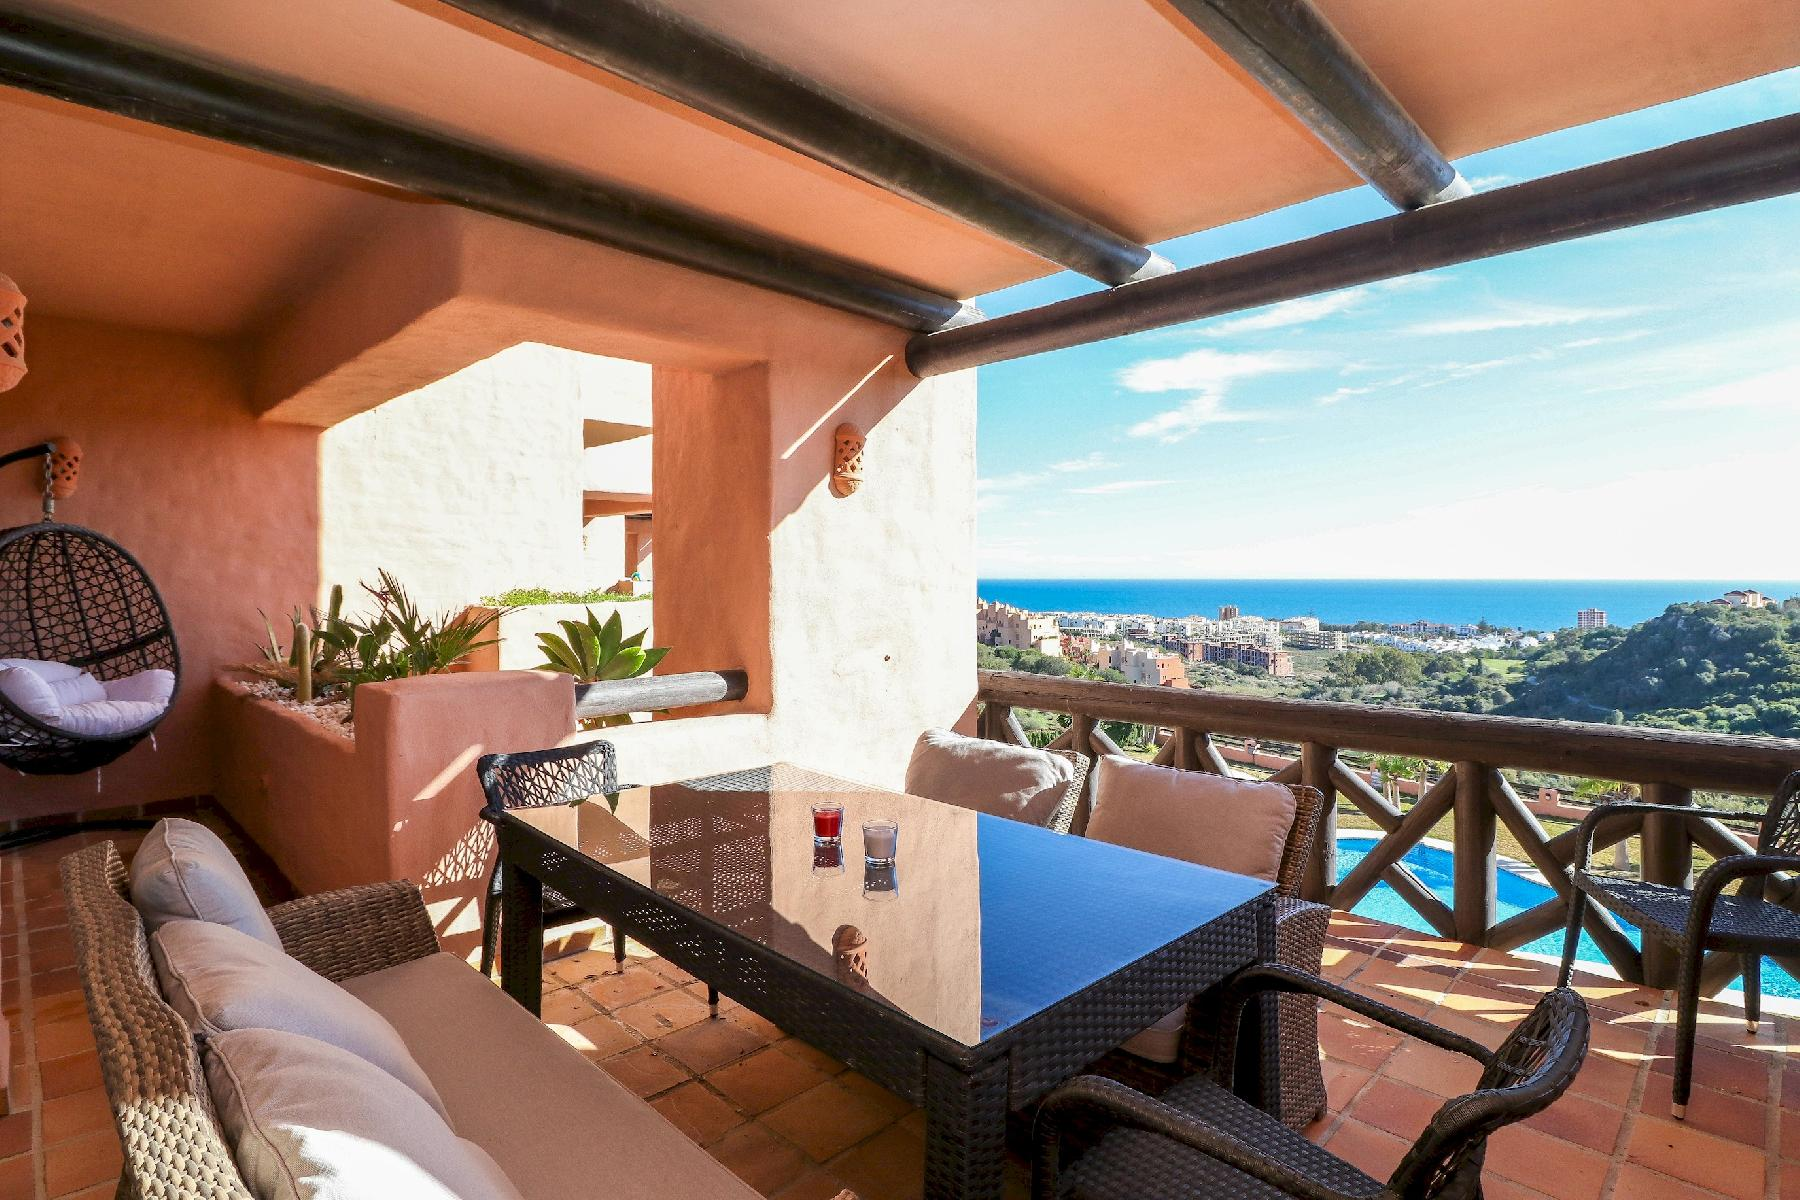 Coto Real Milos by Rafleys - Stunning 2BR Apartment in Manilva, Sea Views, Pool